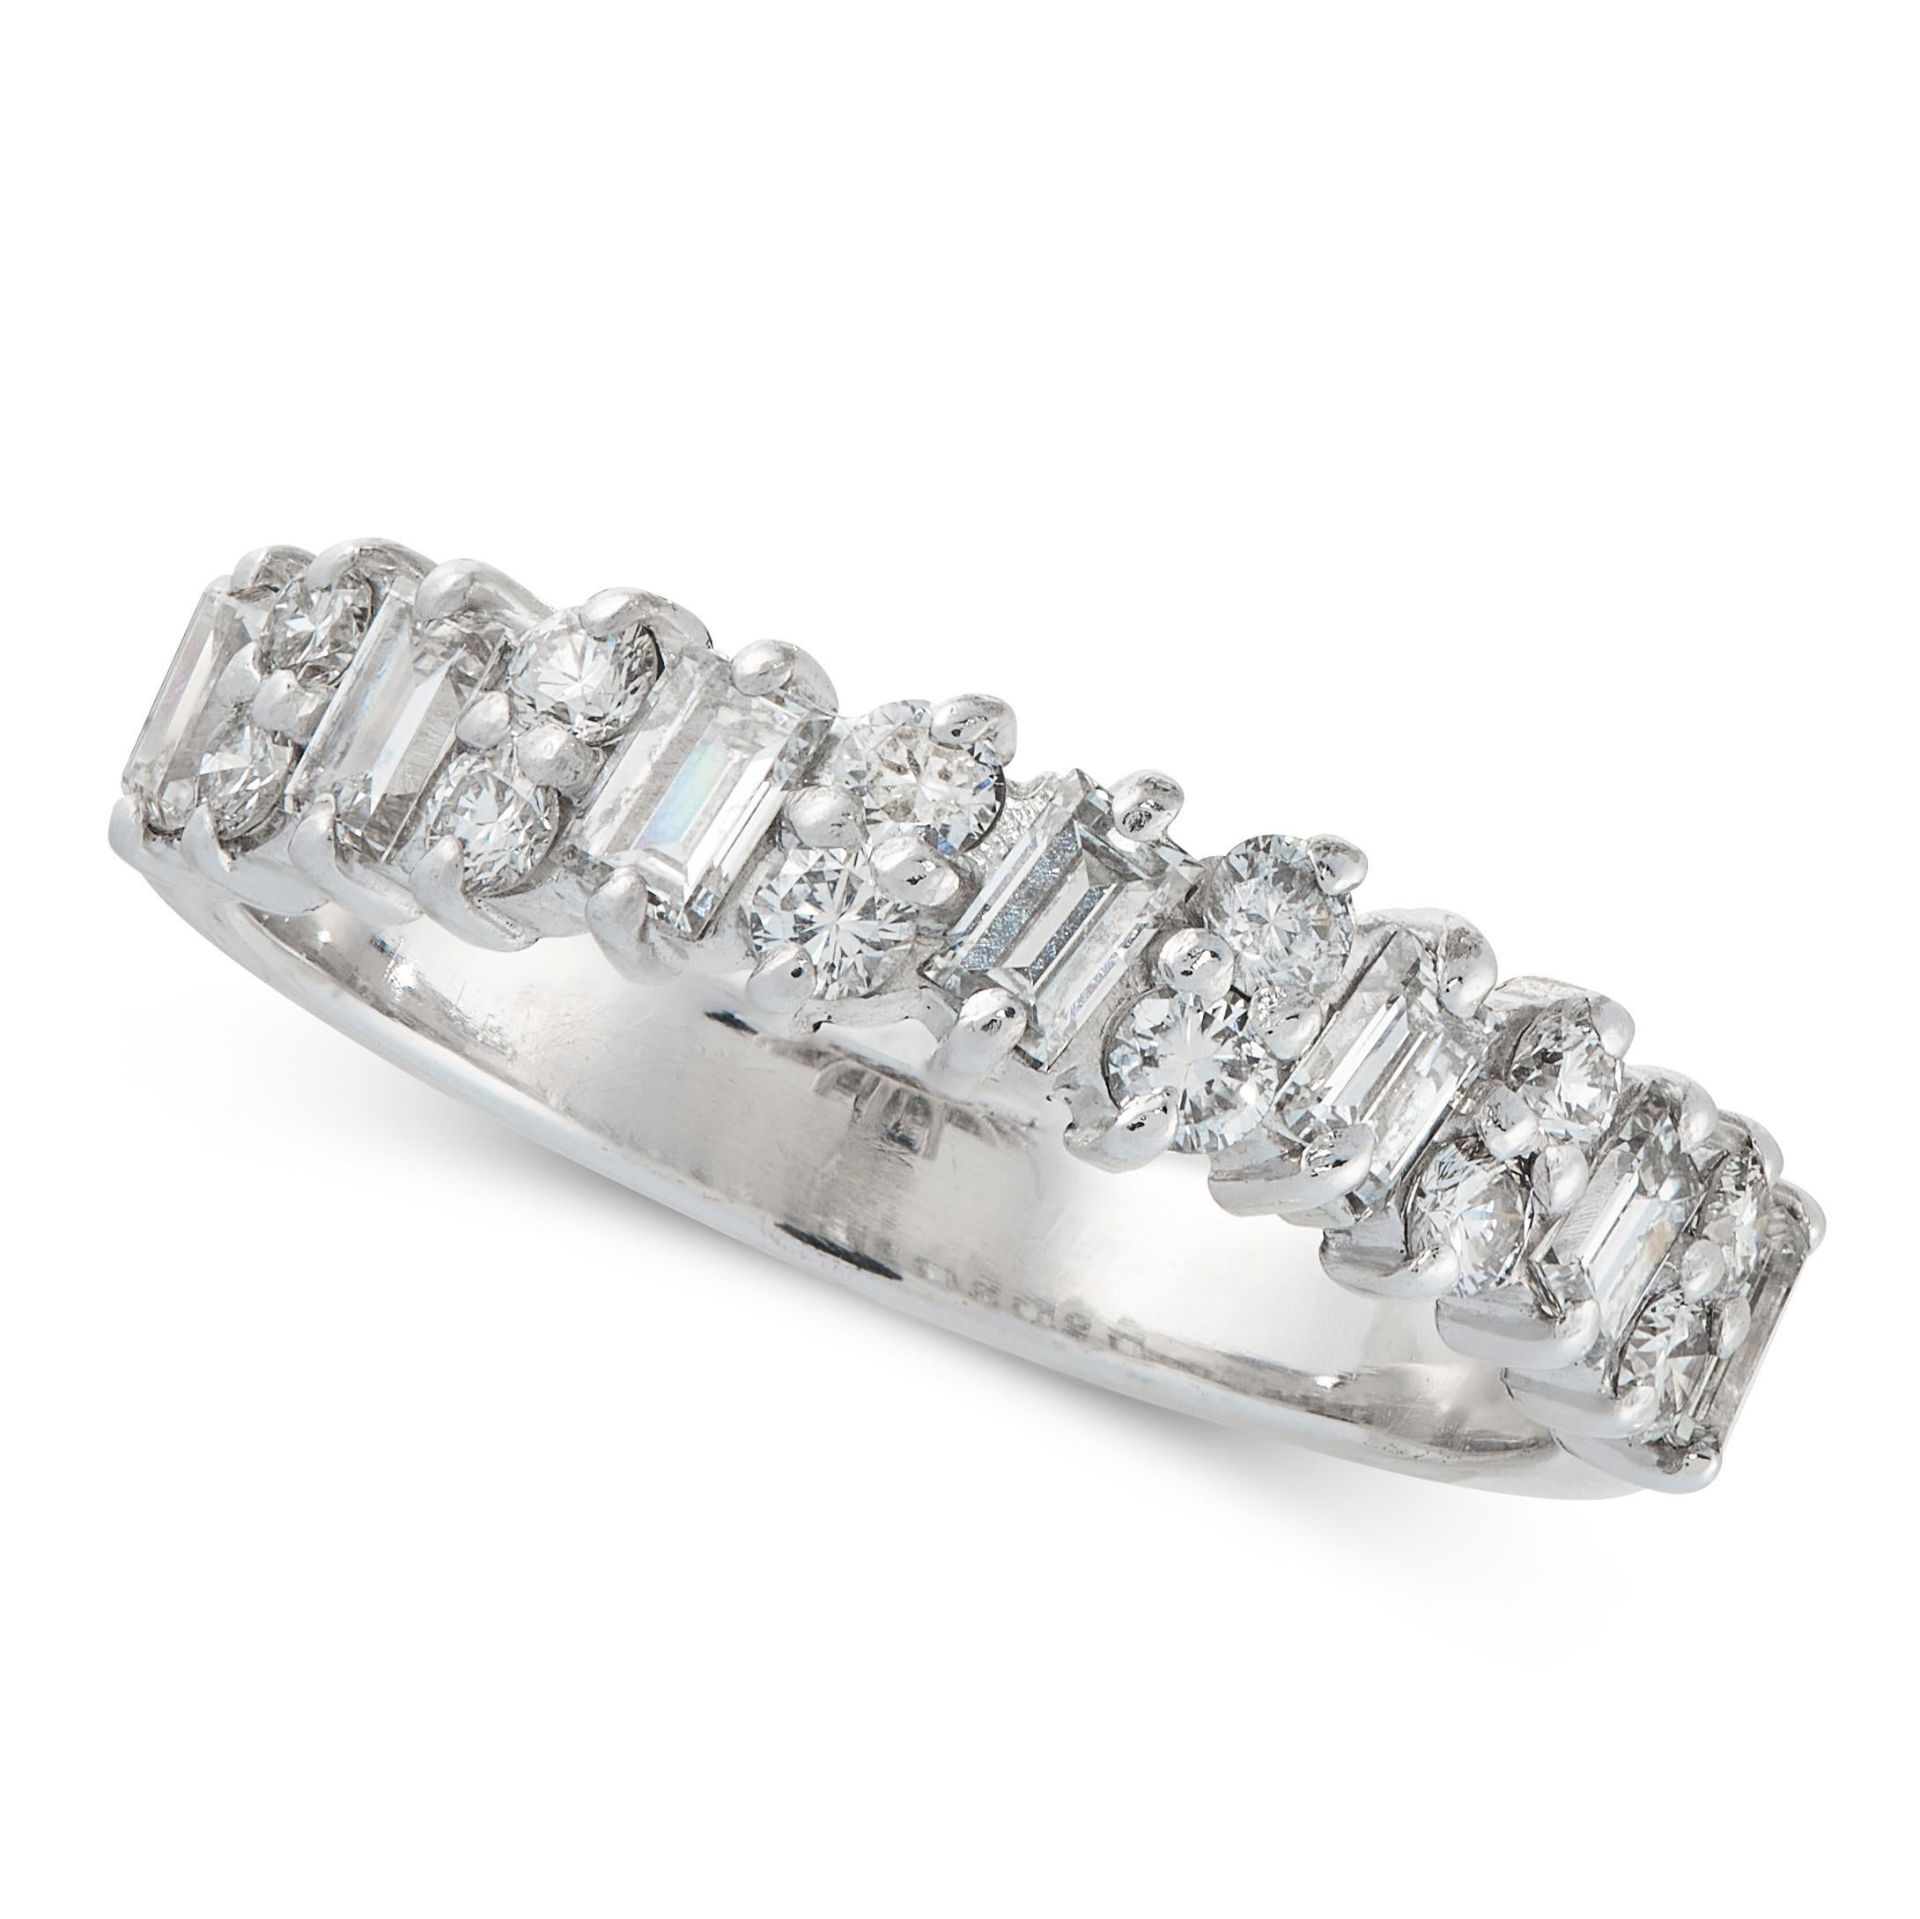 A DIAMOND ETERNITY RING in 18ct white gold, set with alternating baguette and round cut diamonds